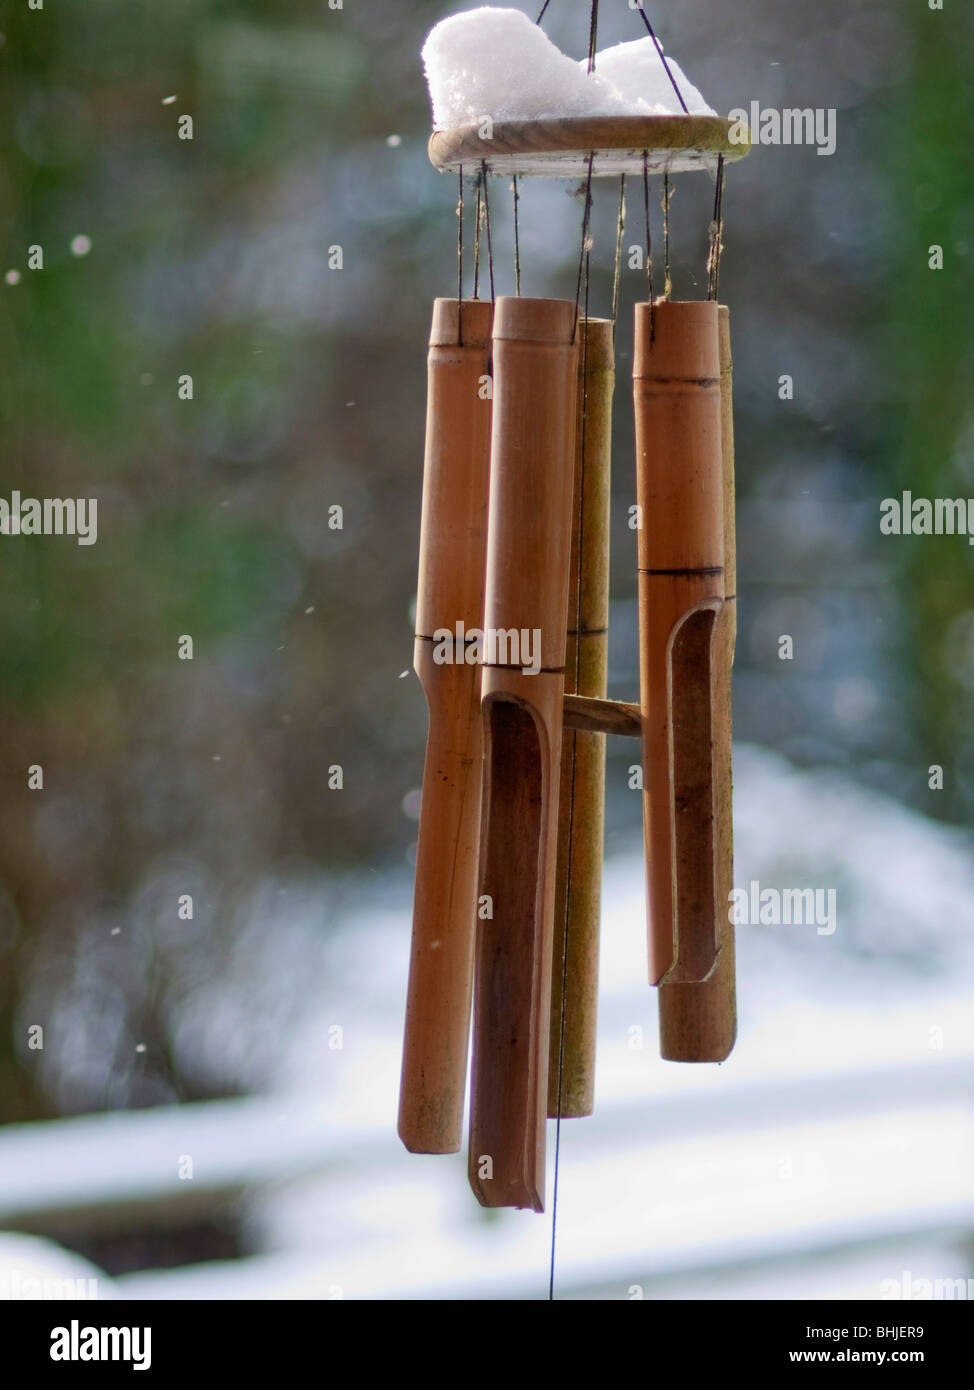 bamboo wind chimes hanging from roof in garden in winter with snow - Stock Image